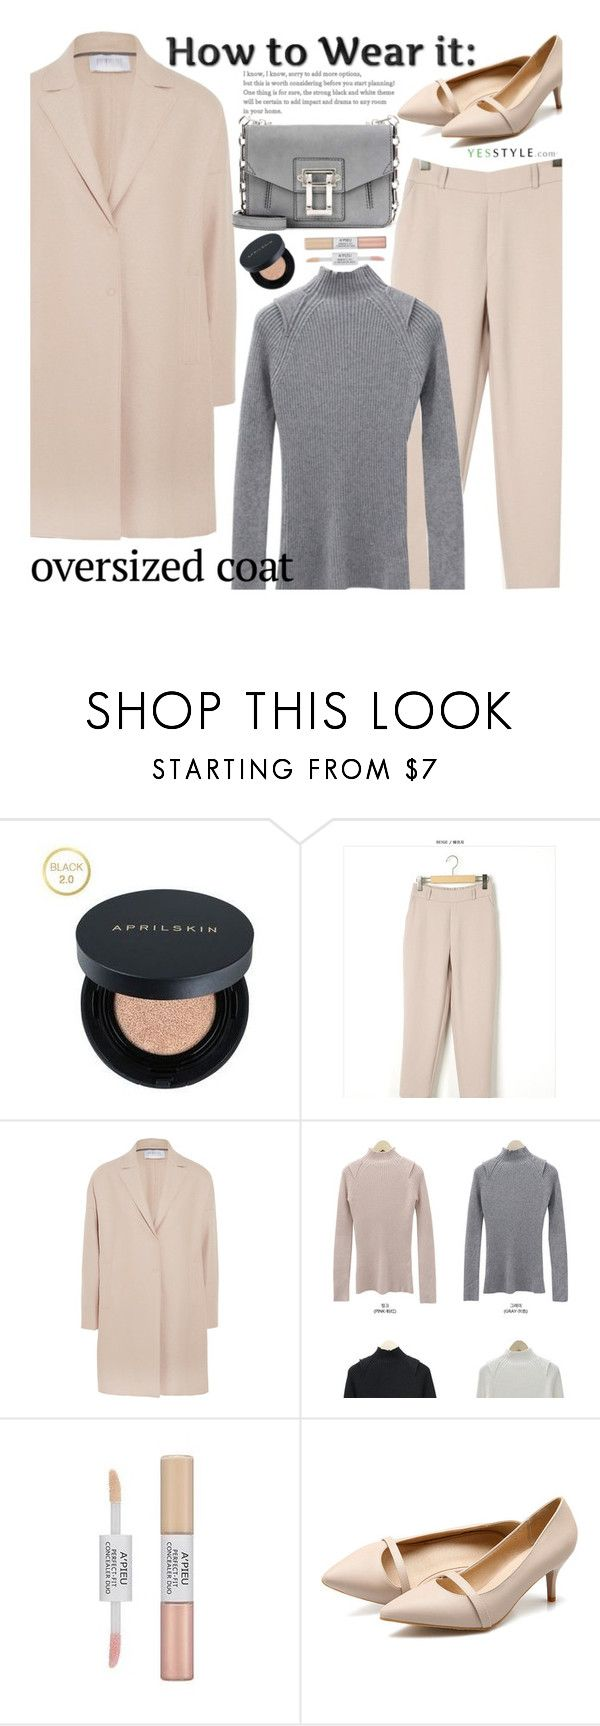 """""""YesStyle - 10% off coupon (Chic Oversized Coats)"""" by beebeely-look ❤ liked on Polyvore featuring Harris Wharf London, Proenza Schouler, Winter, yesstyle and oversizedcoats"""